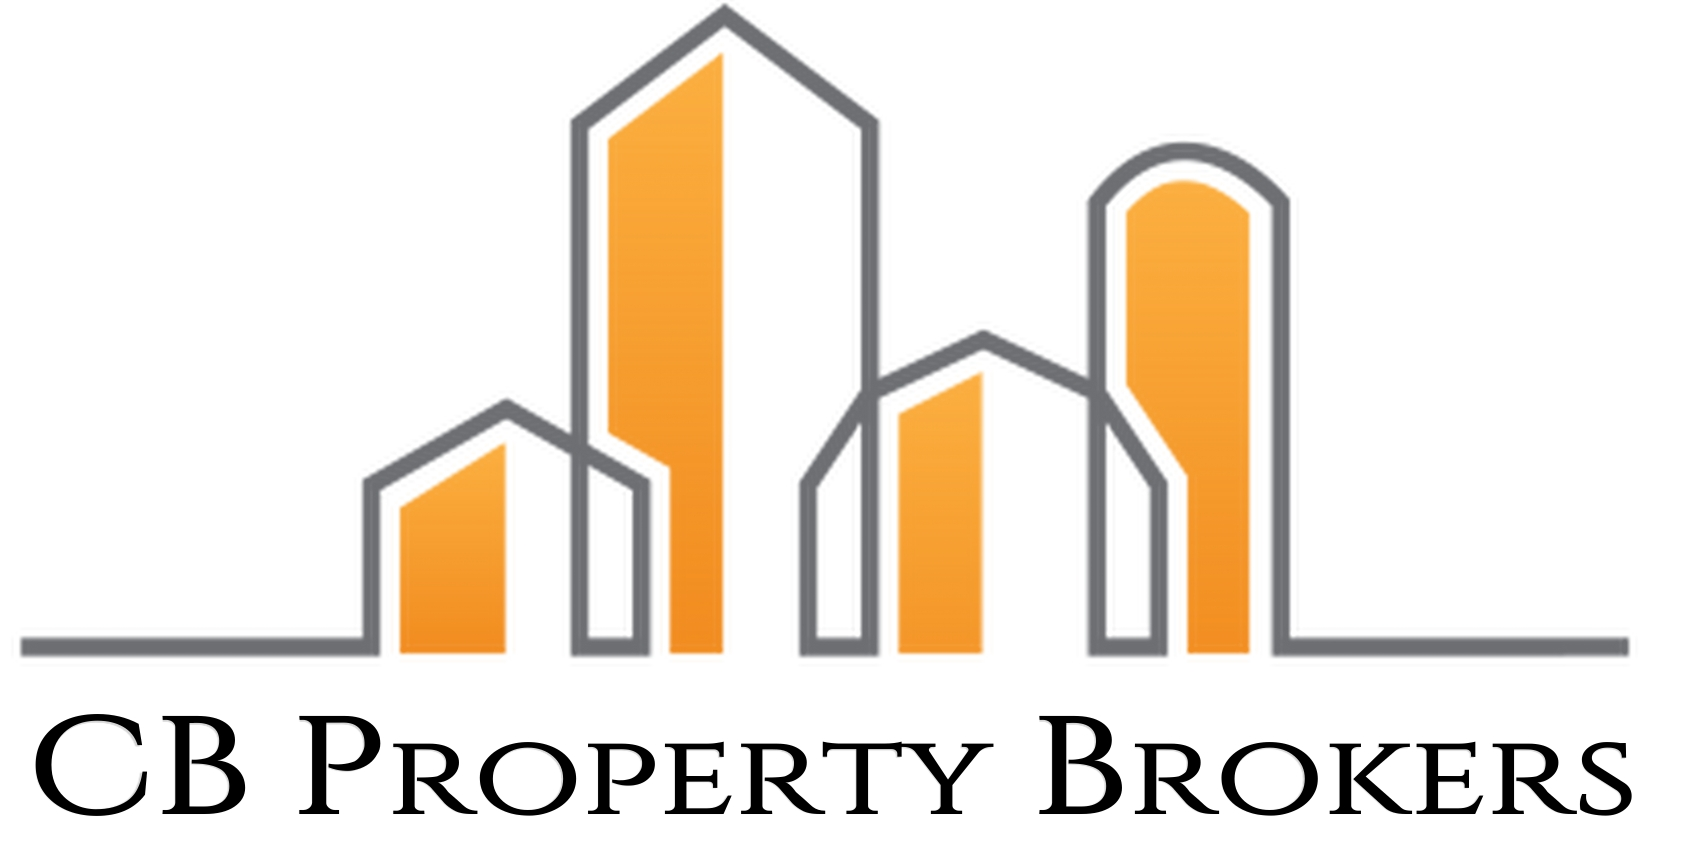 CB Property Brokers